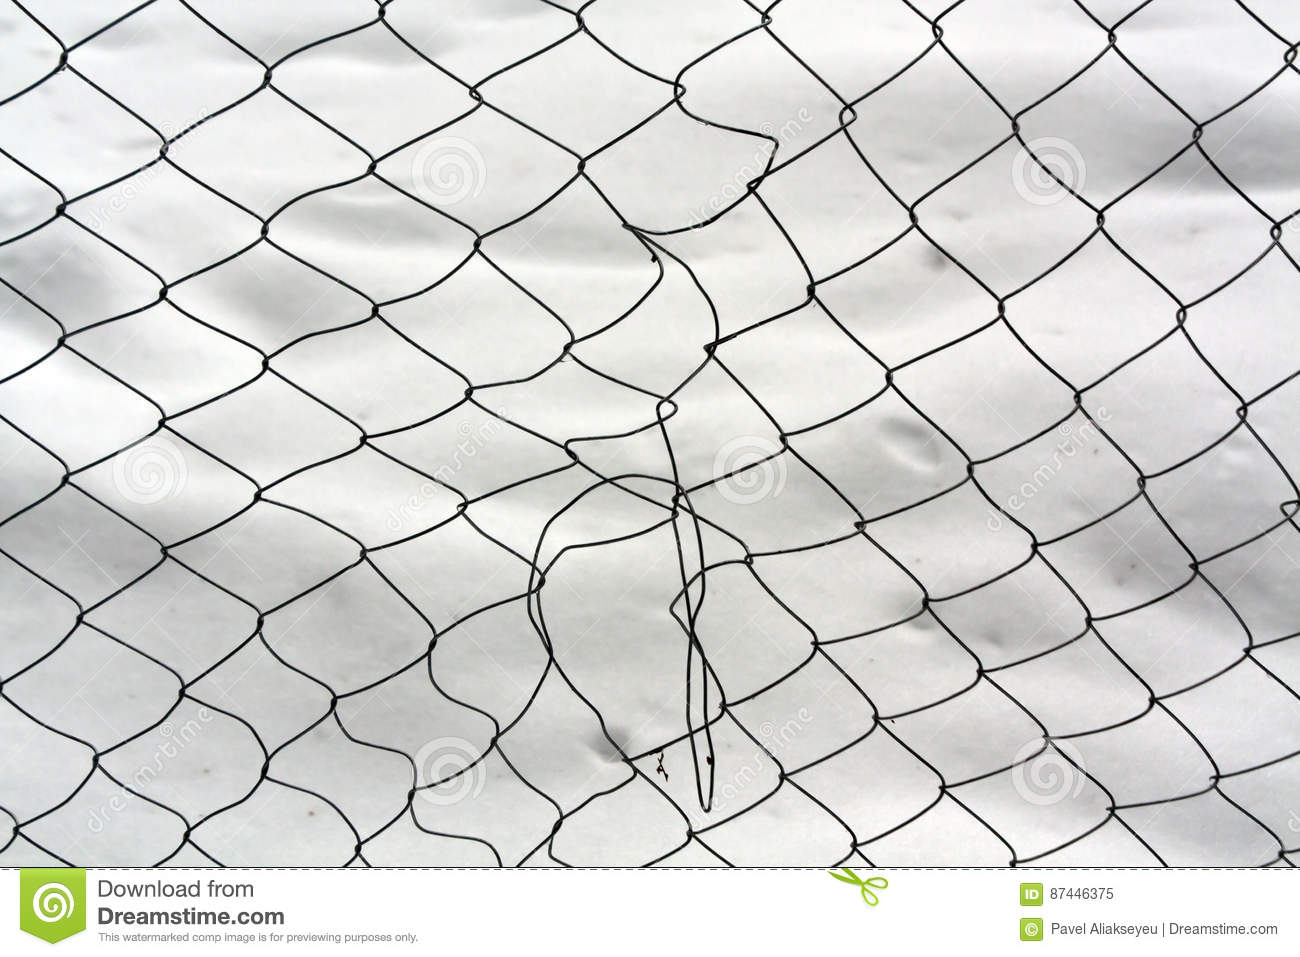 Damaged Mesh Wire Fence Against Snow. Stock Image - Image of ...